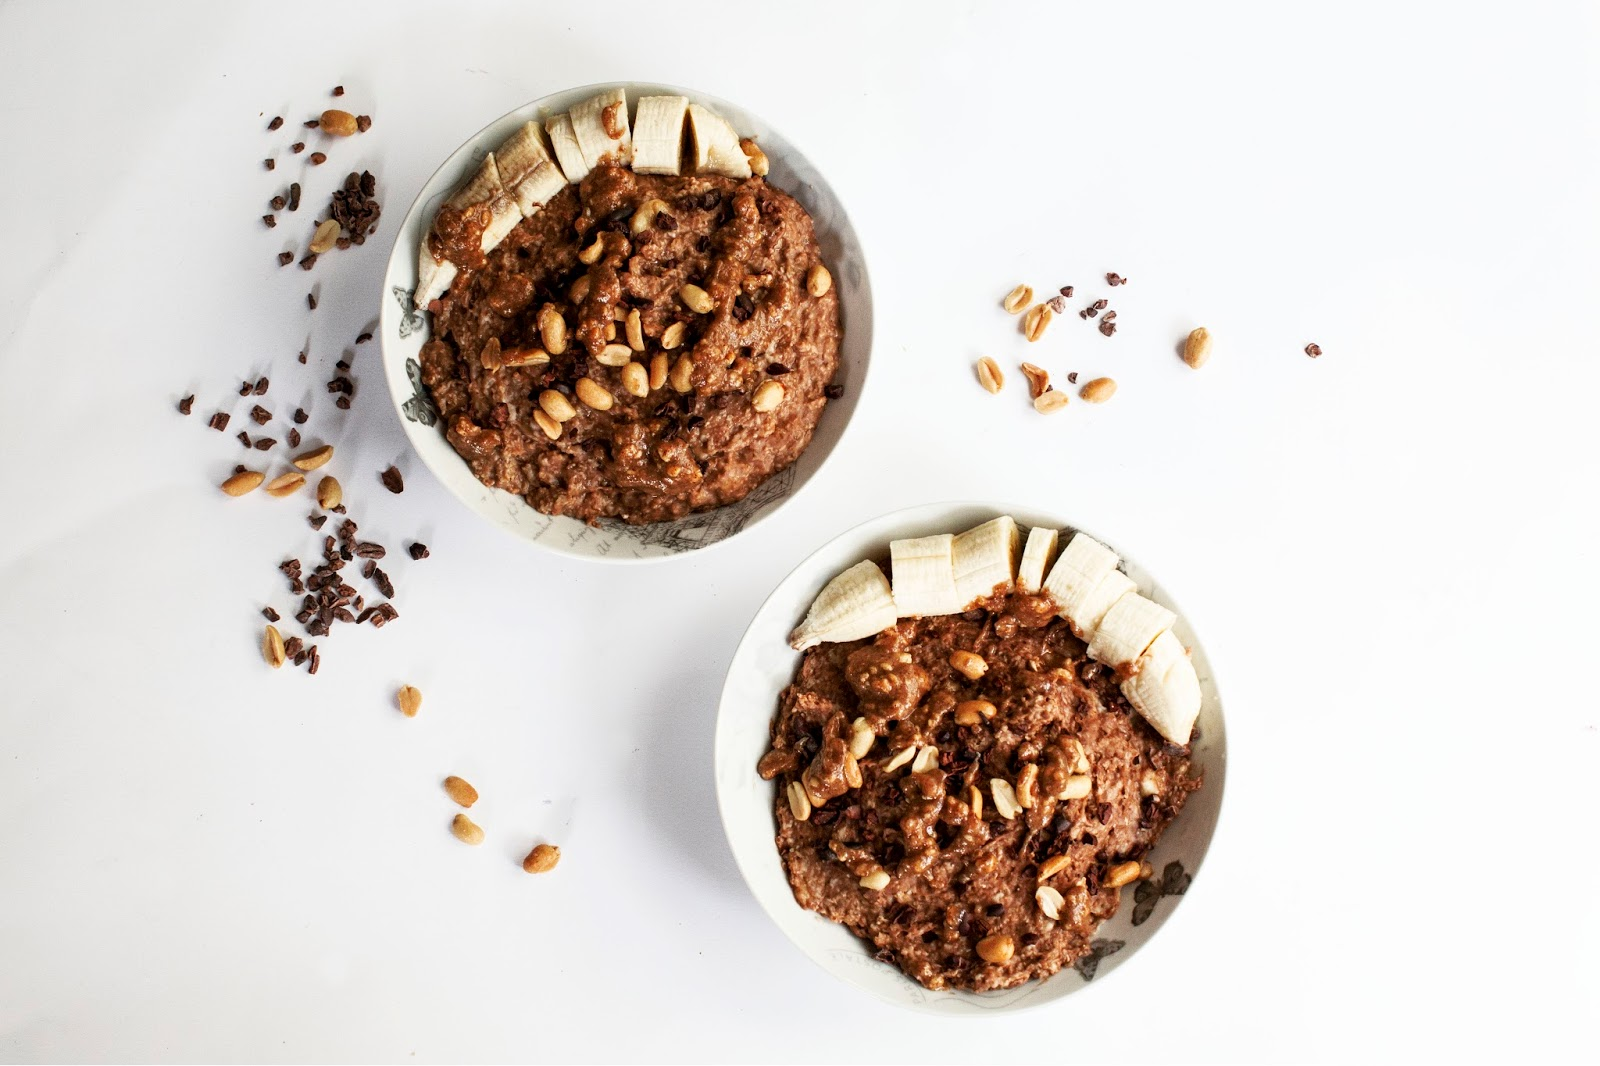 https://www.thewhimsicalwildling.com/2017/03/healthy-chocolate-peanut-butter-oatmeal.html